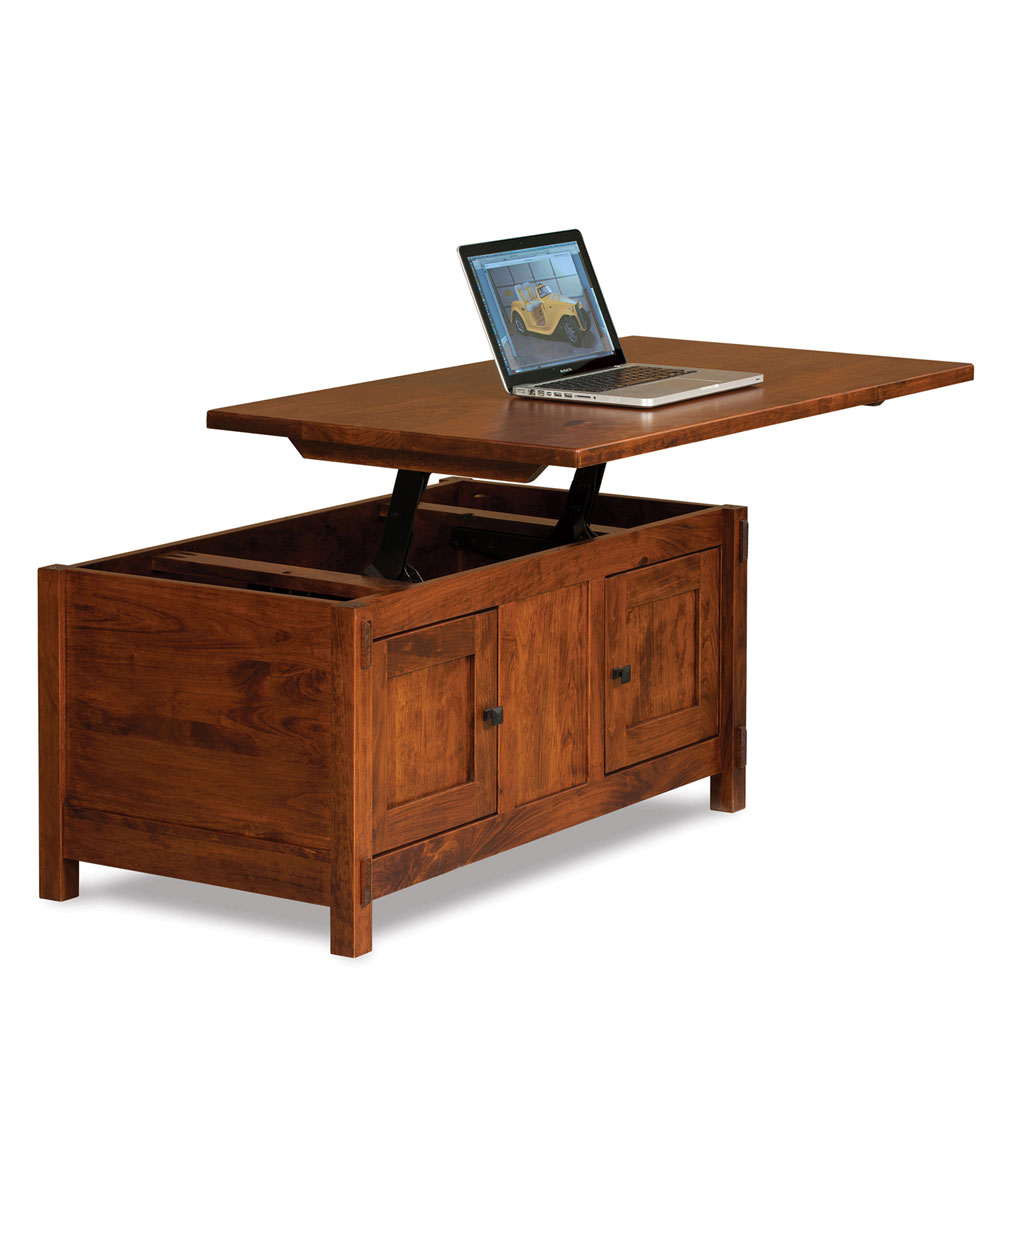 Centennial enclosed coffee table with lift top amish direct centennial collection geotapseo Gallery